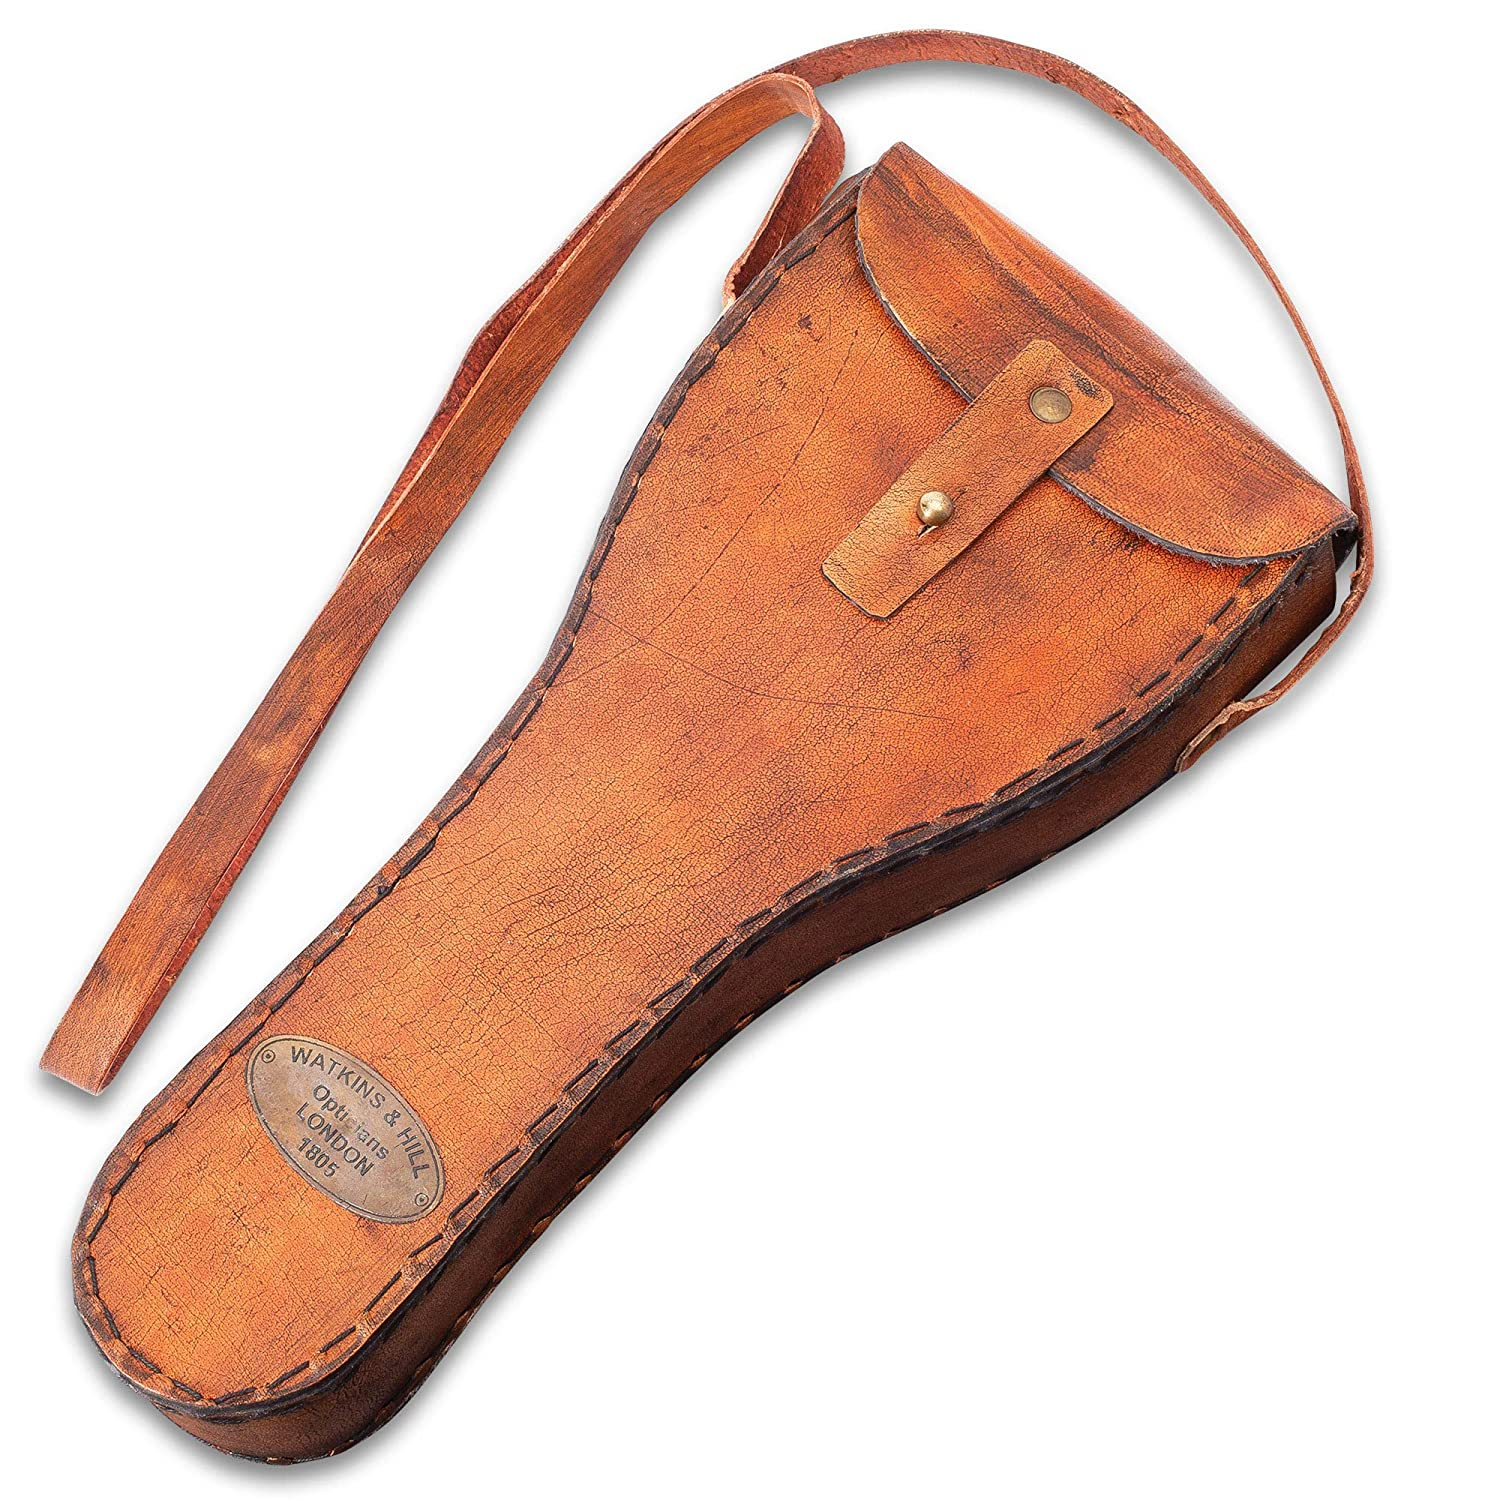 K EXCLUSIVE Antique Magnifying Glass with Leather Case Brass Construction Length 9 1//4 Genuine Leather Grip